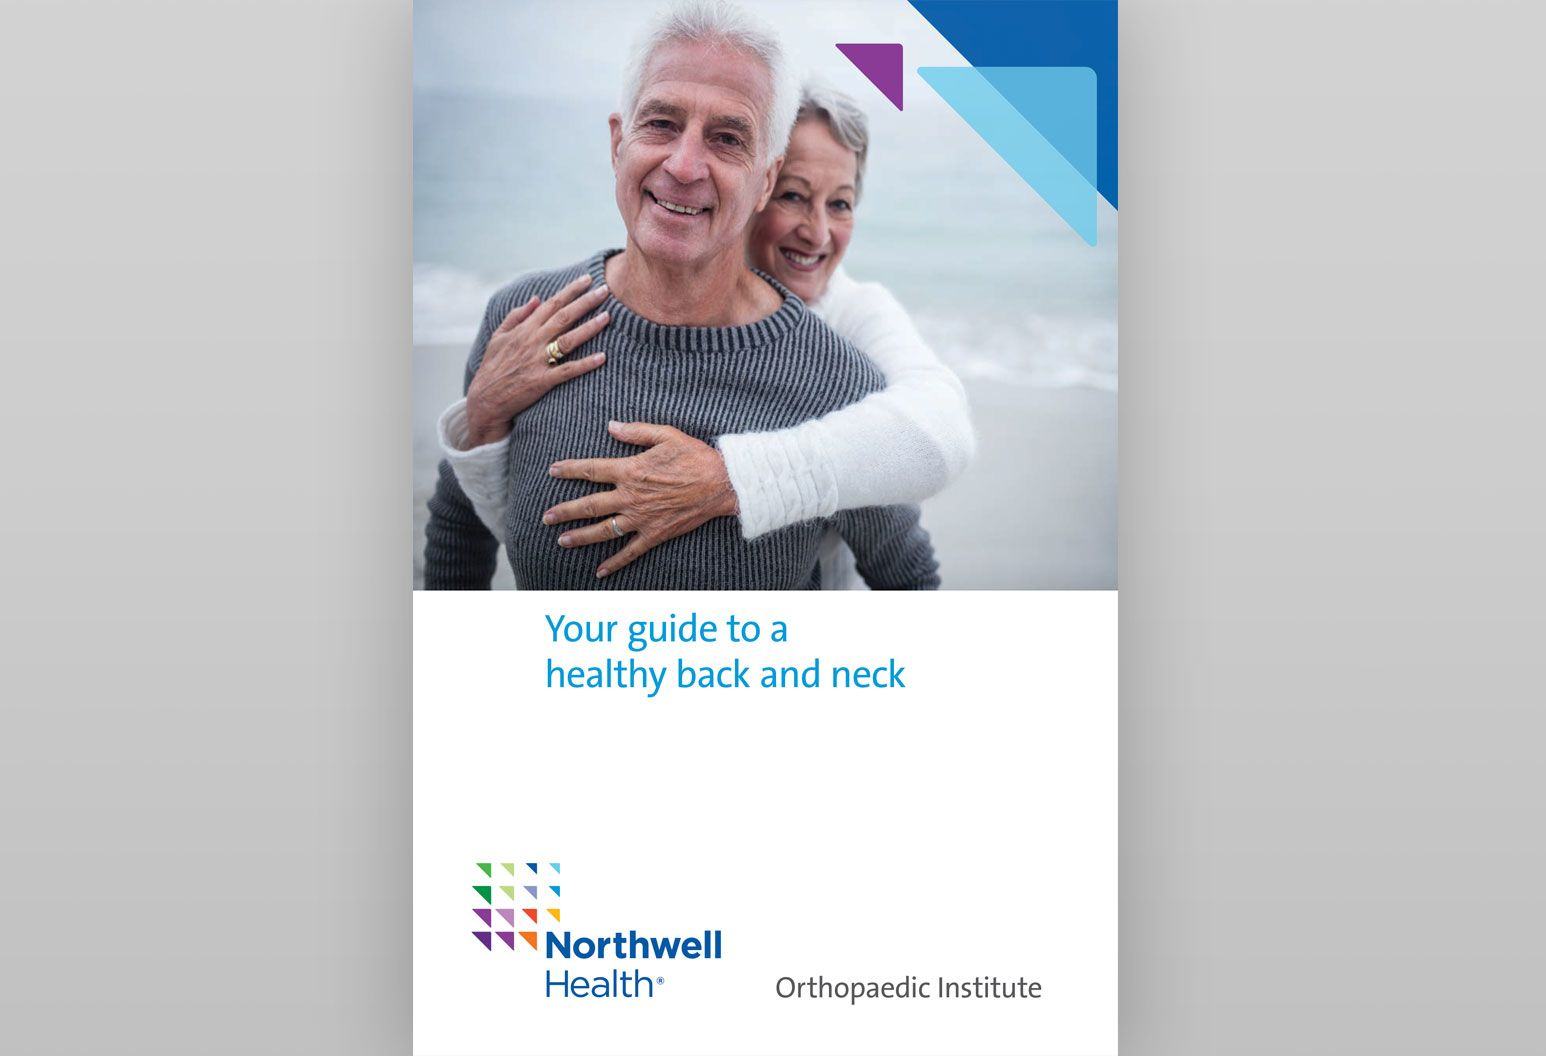 Two Northwell Health ebooks are displayed. One is a guide to a healthy back and neck with a photo of a couple smiling on the beach on the cover, and the other is behind it with a photo of a couple gardening together.